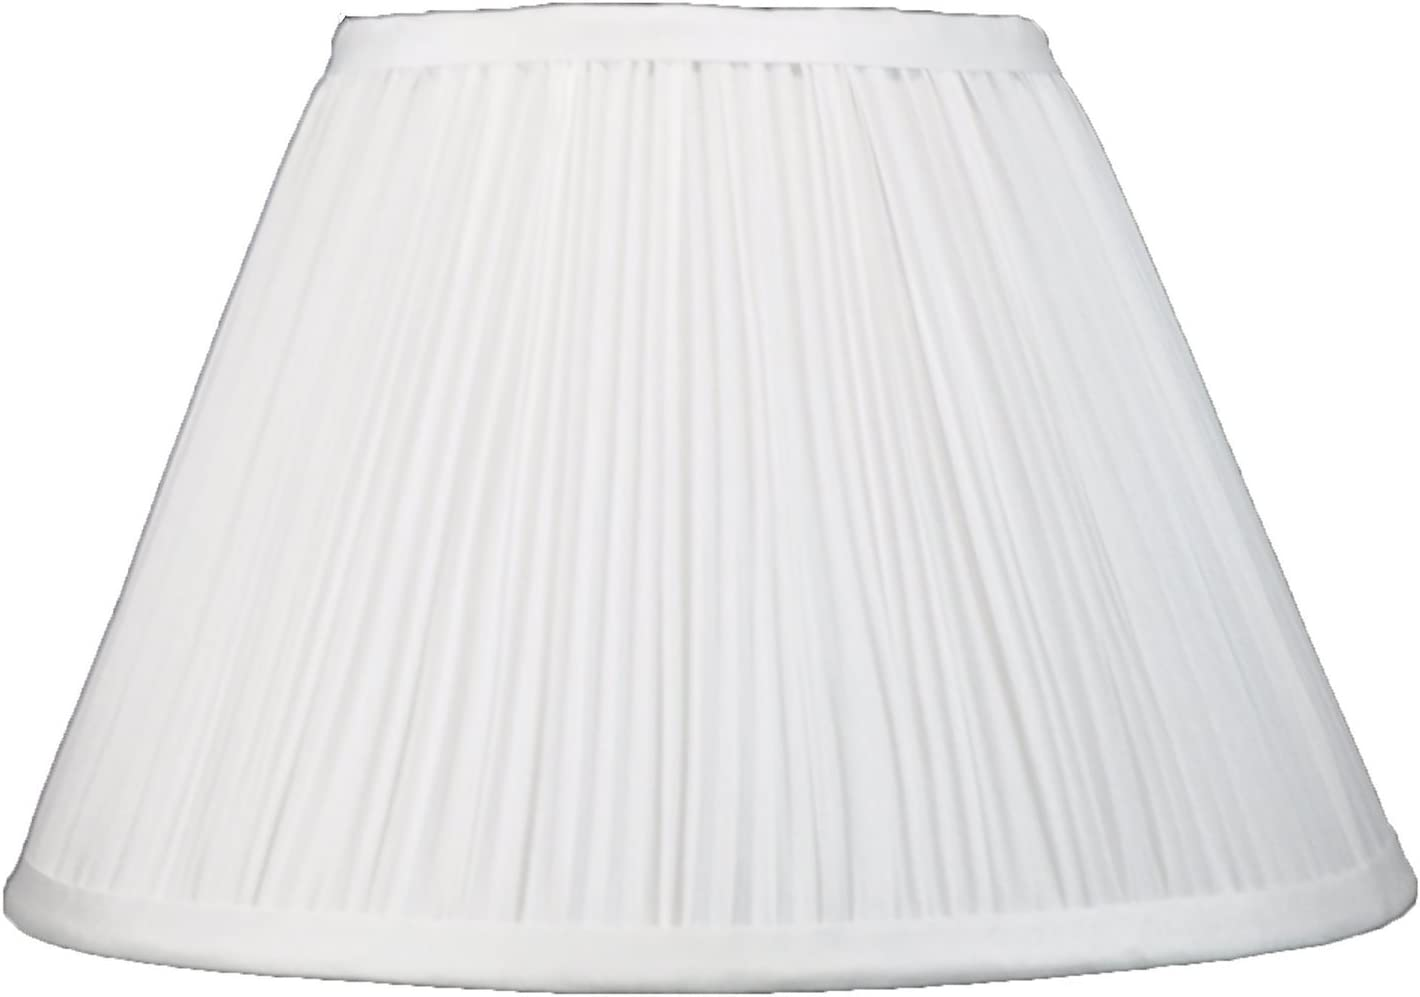 Upgradelights 8 Inch Empire Pleated Clip On Lampshade Replacement White